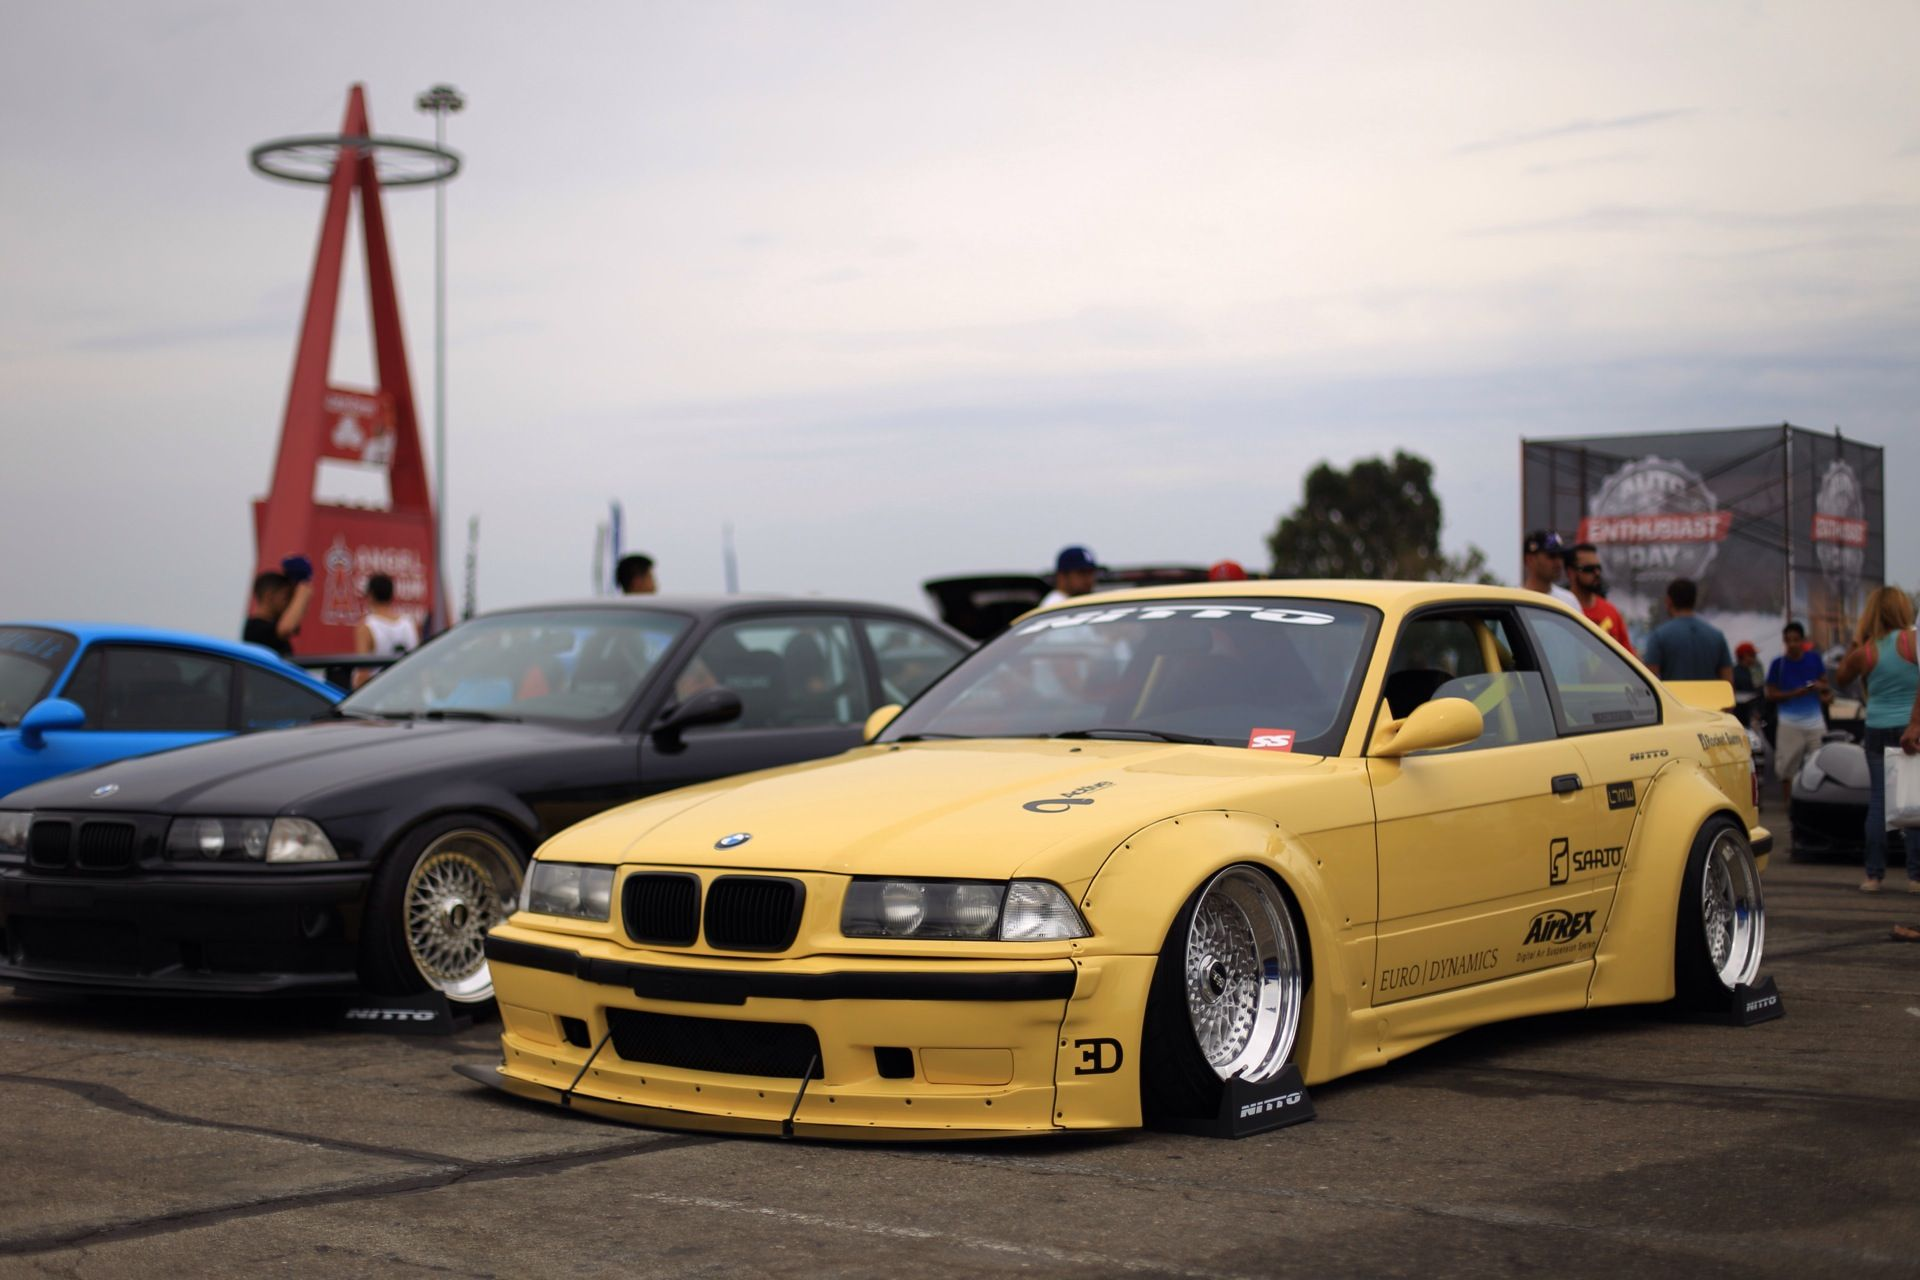 Your opinion on this BMW? Carros adesivados, Bmw, Carros